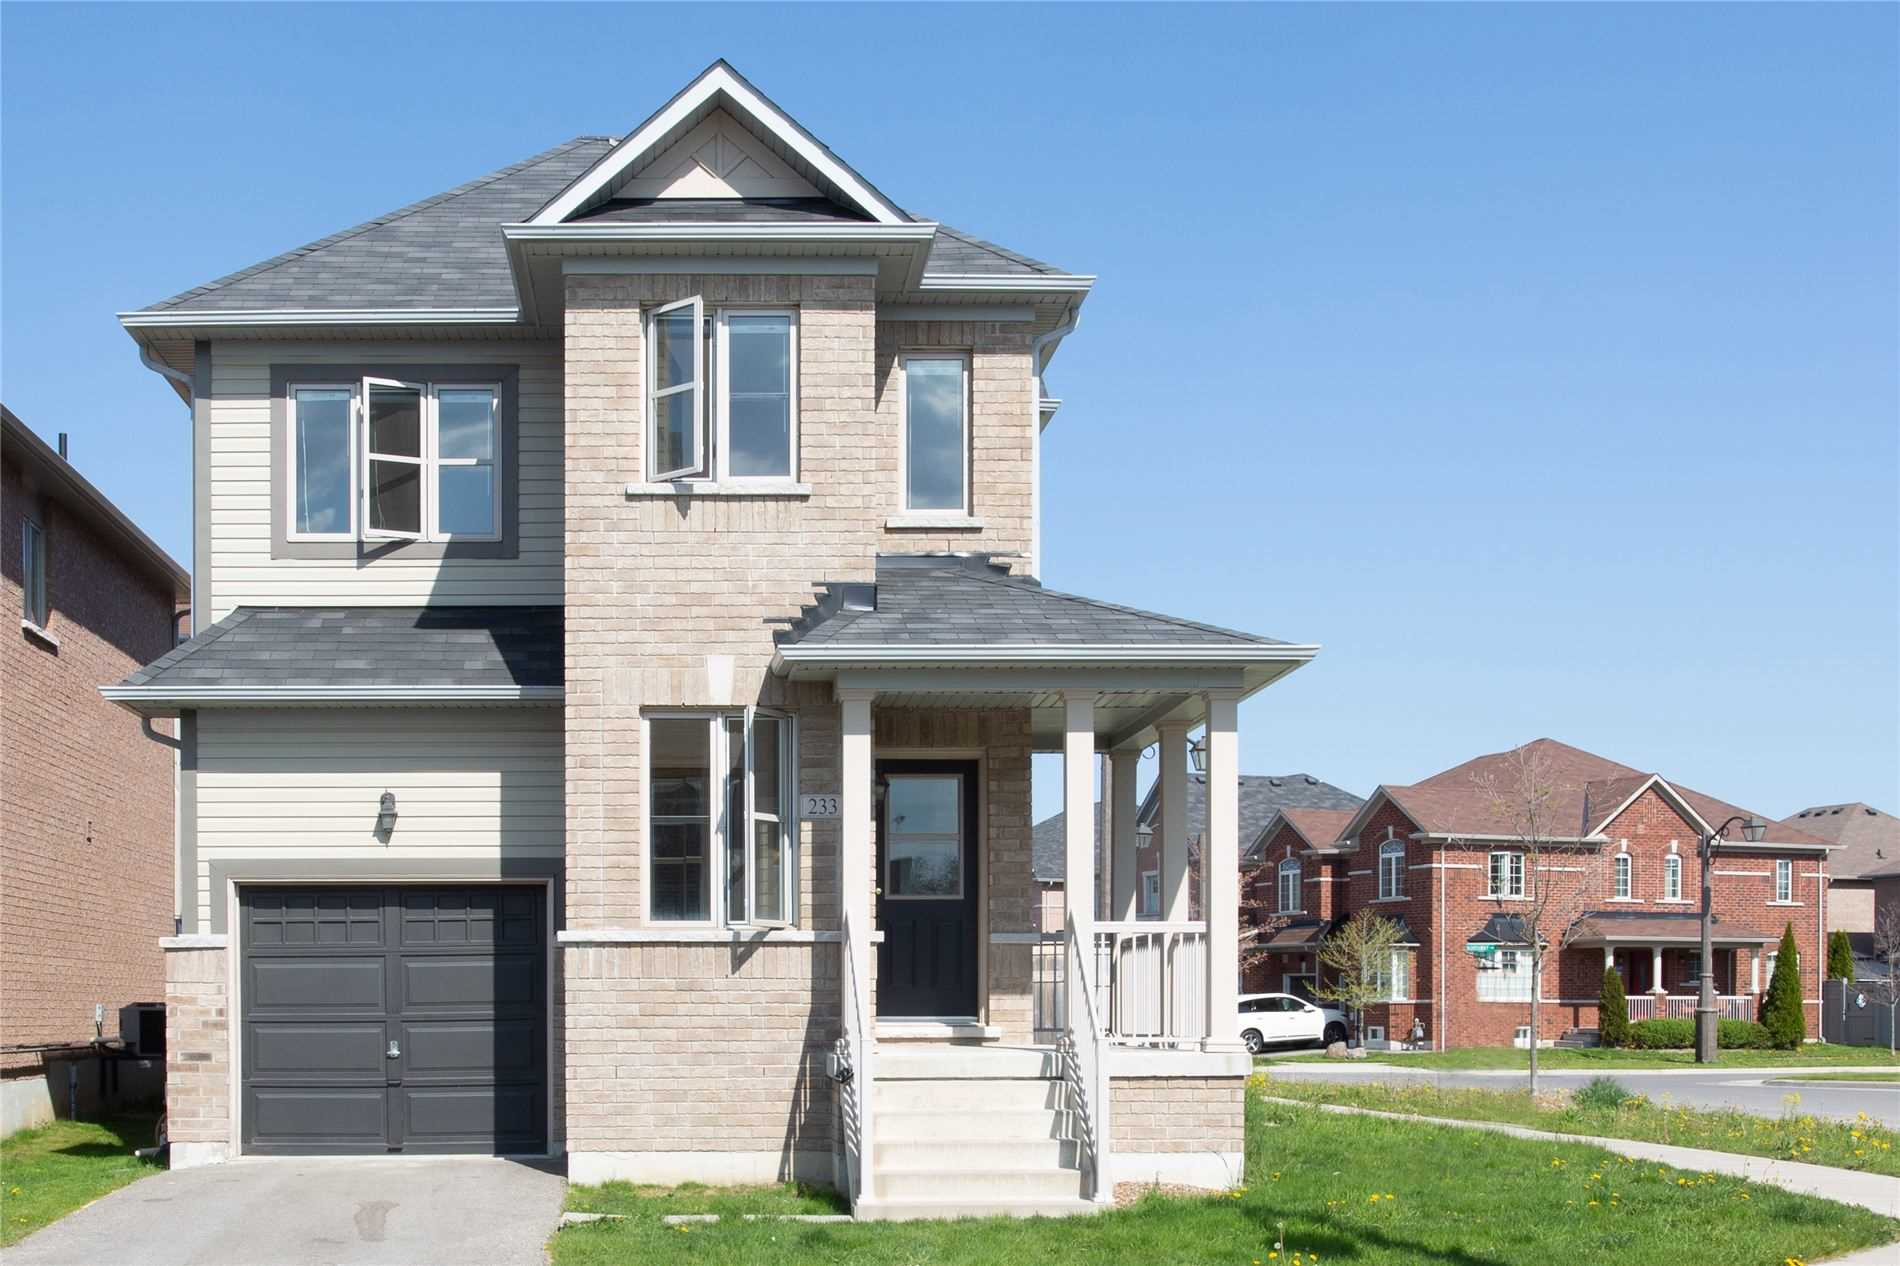 pictures of house for sale MLS: N5242652 located at 233 Delbert Circ, Whitchurch-Stouffville L4A0Y6